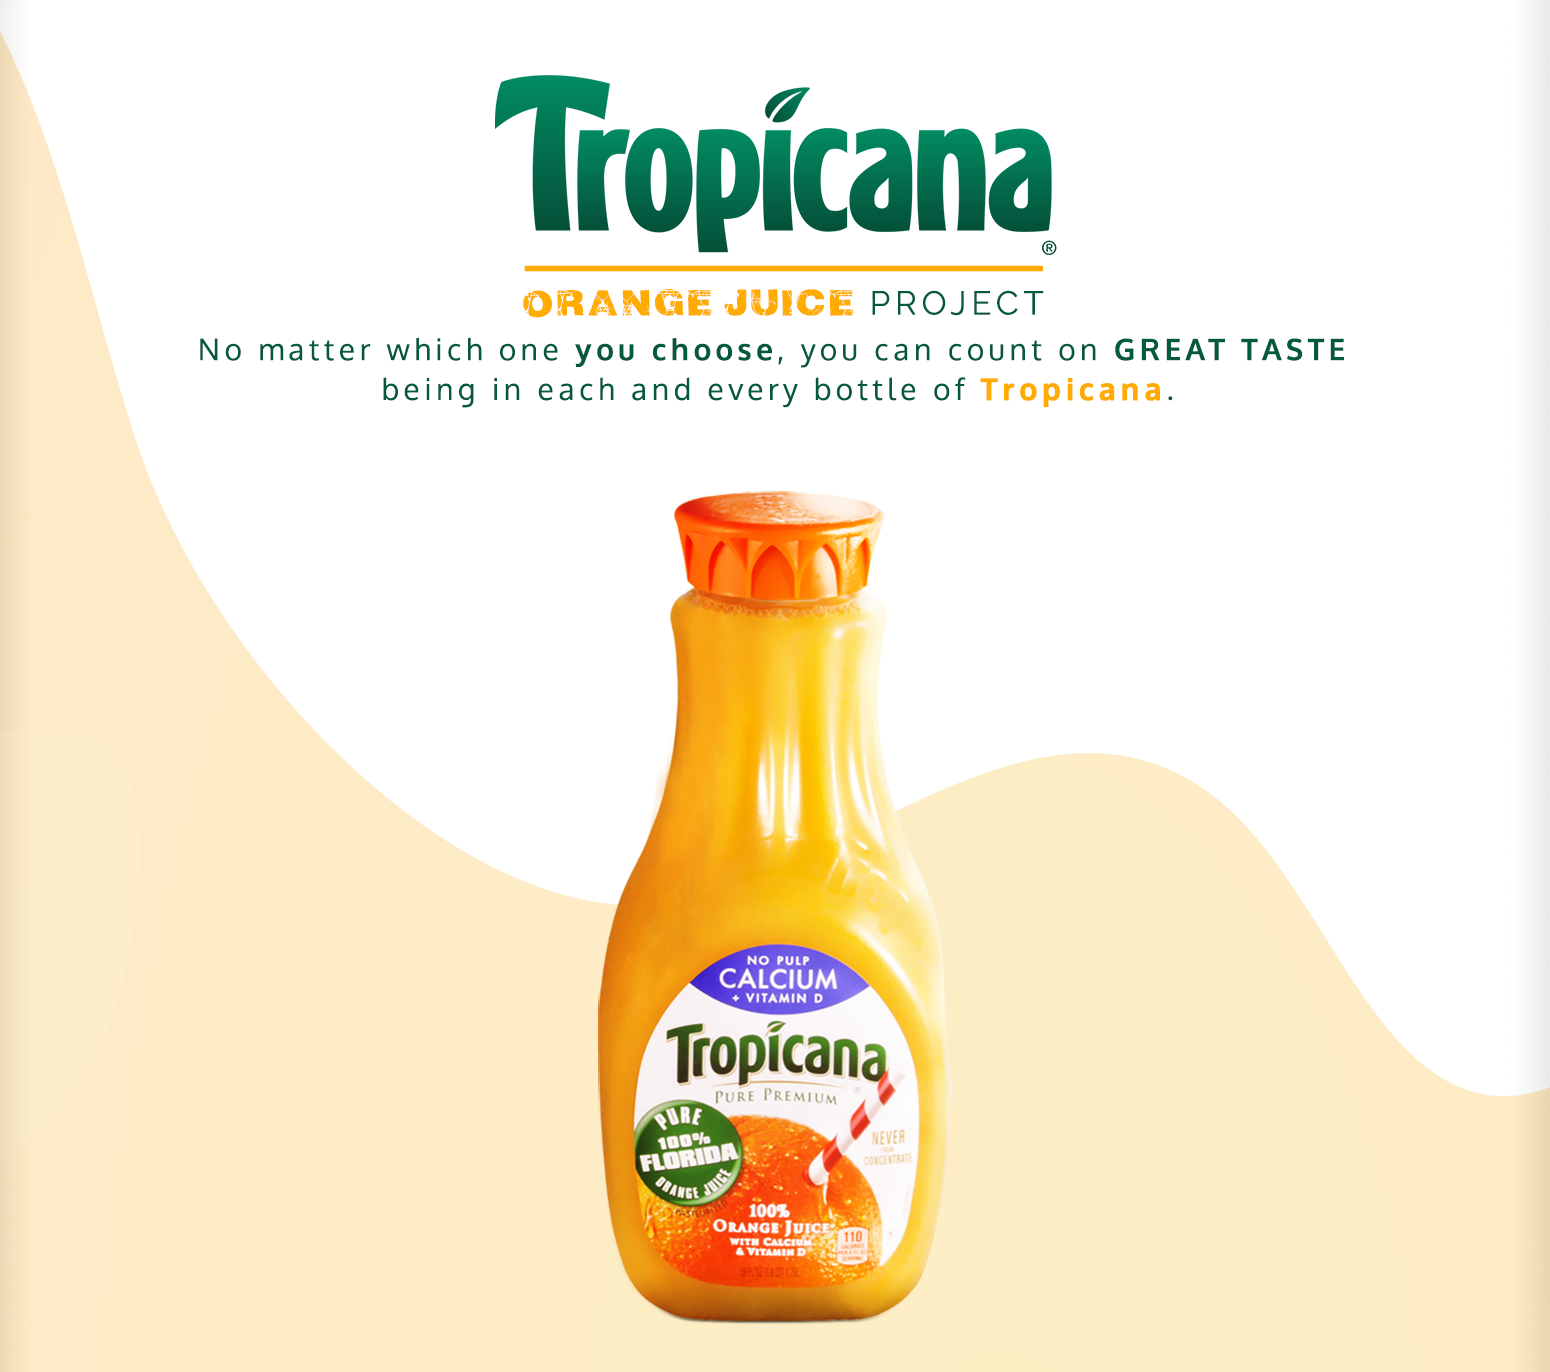 Tropicana | Orange Juice Advertising